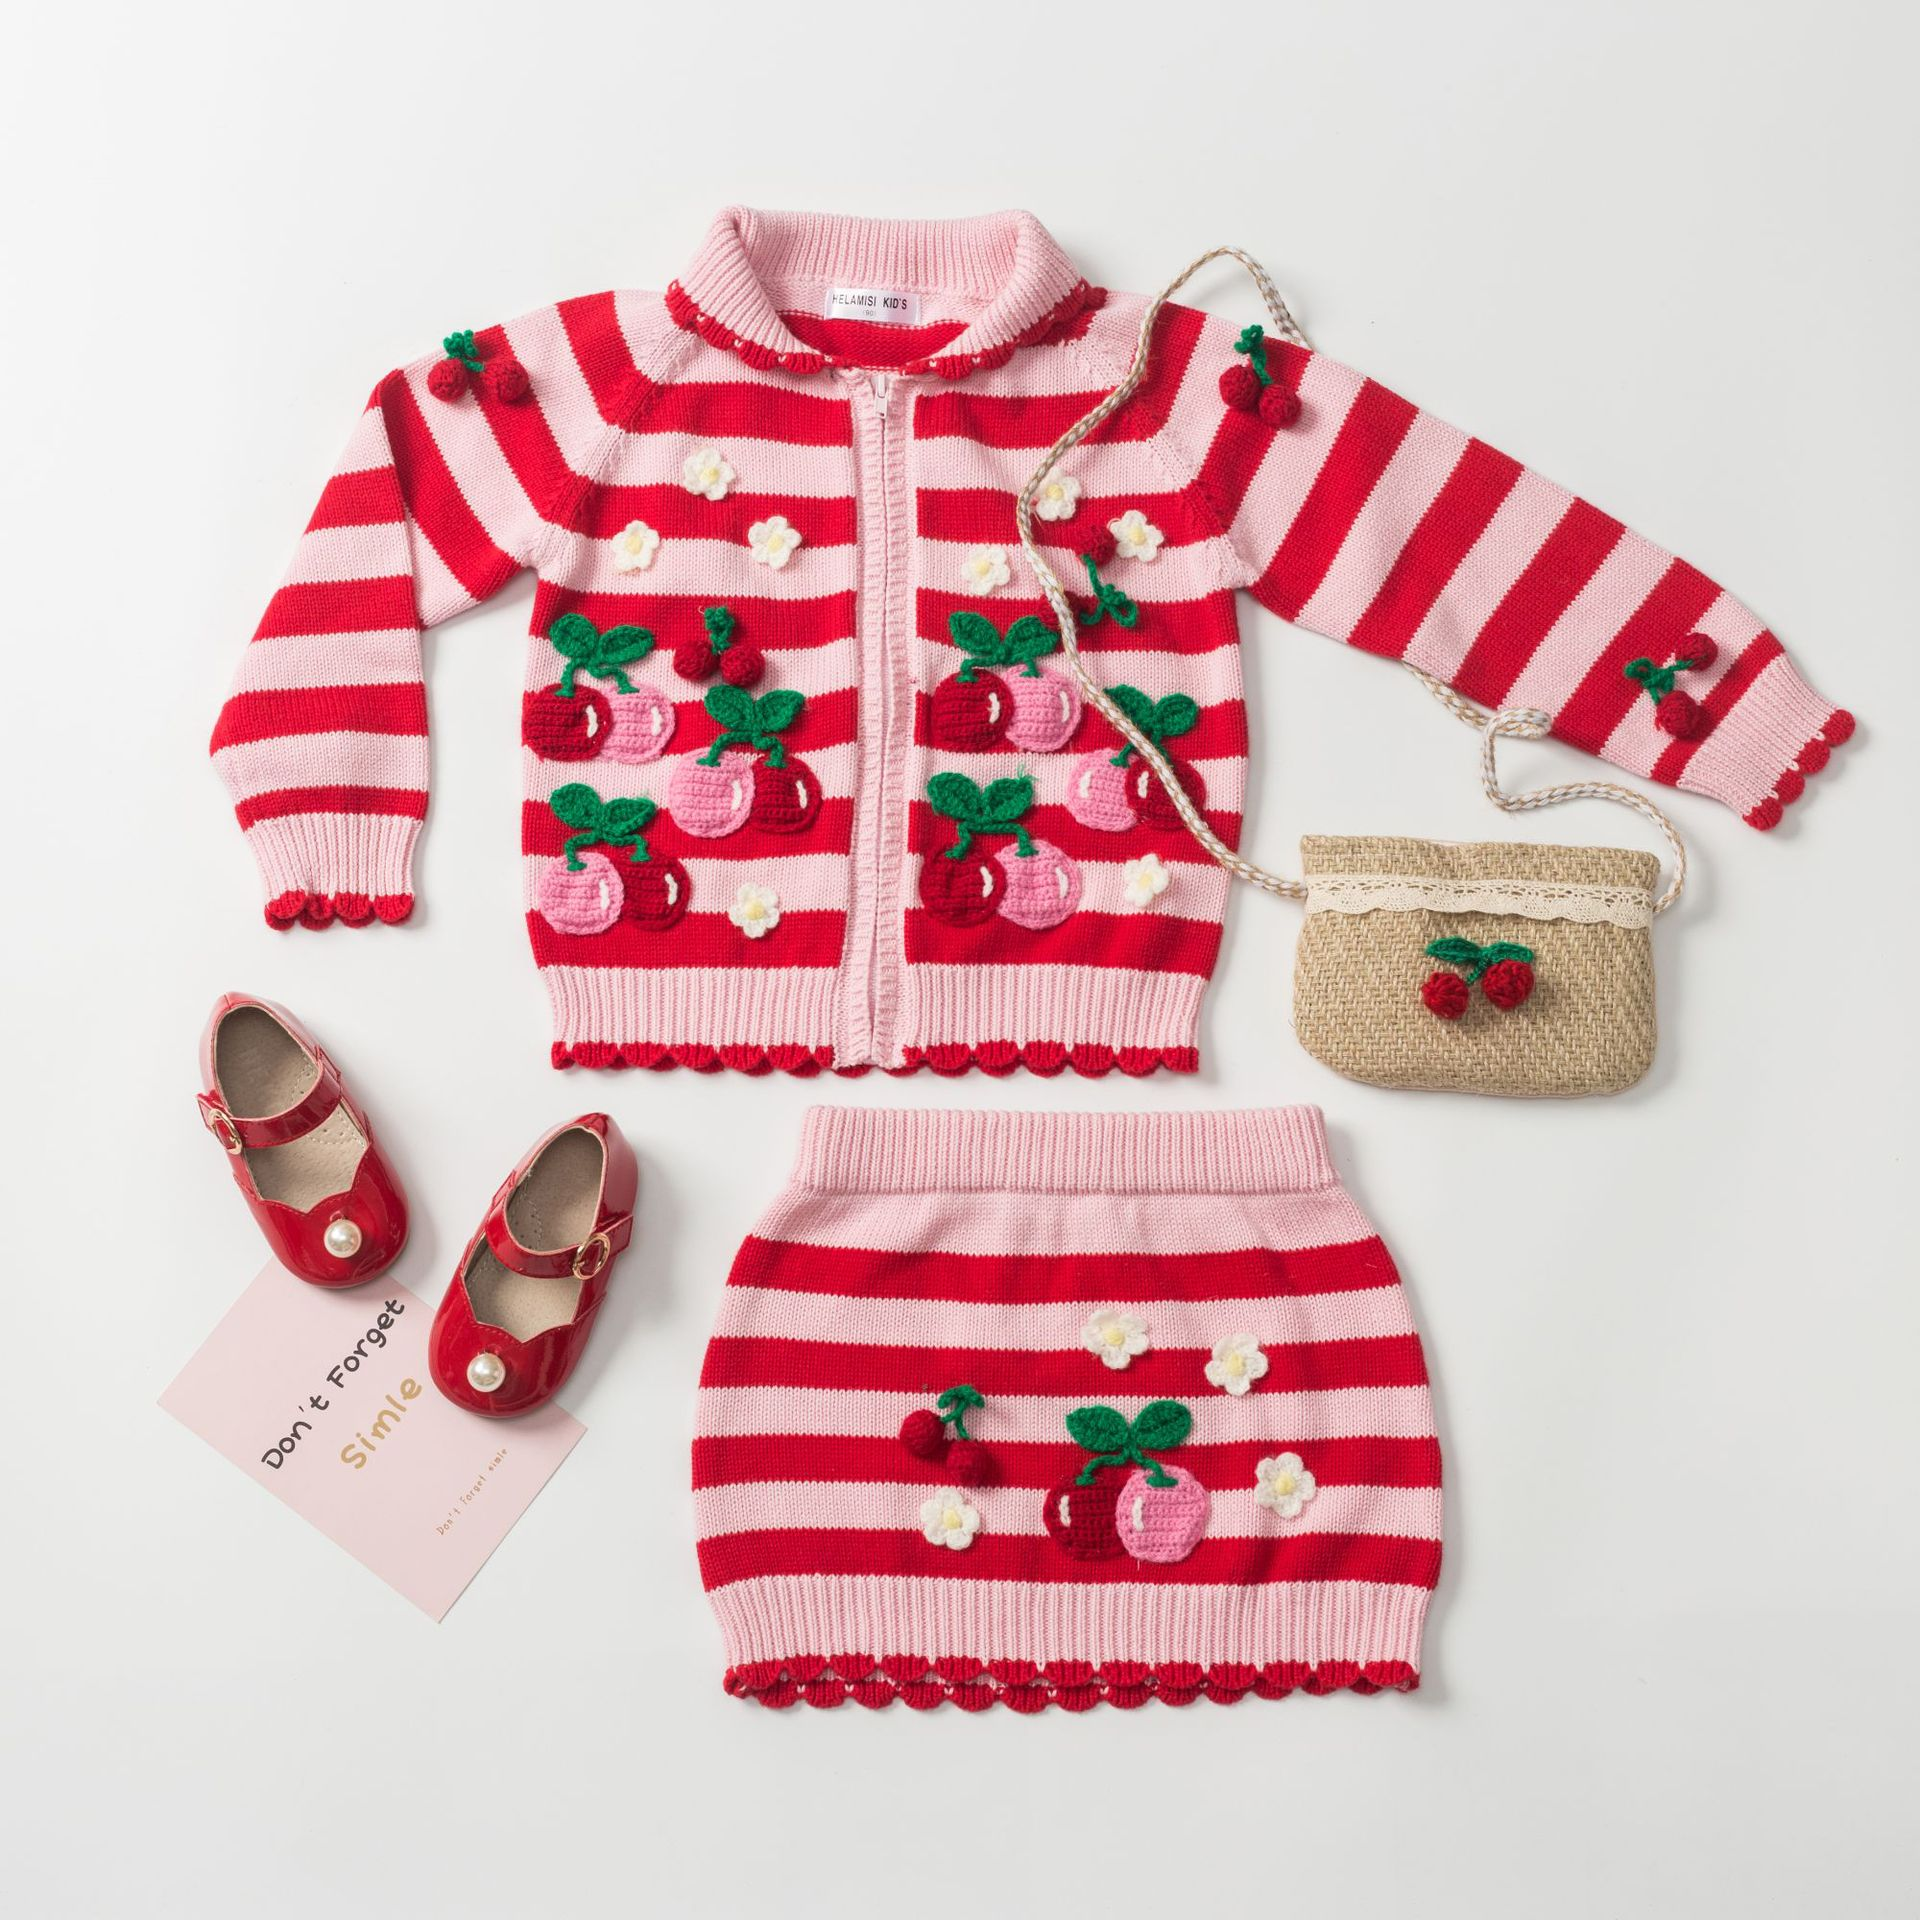 2 9t 2019 Autumn Cherry Girls Clothing Girls Boutique Outfits